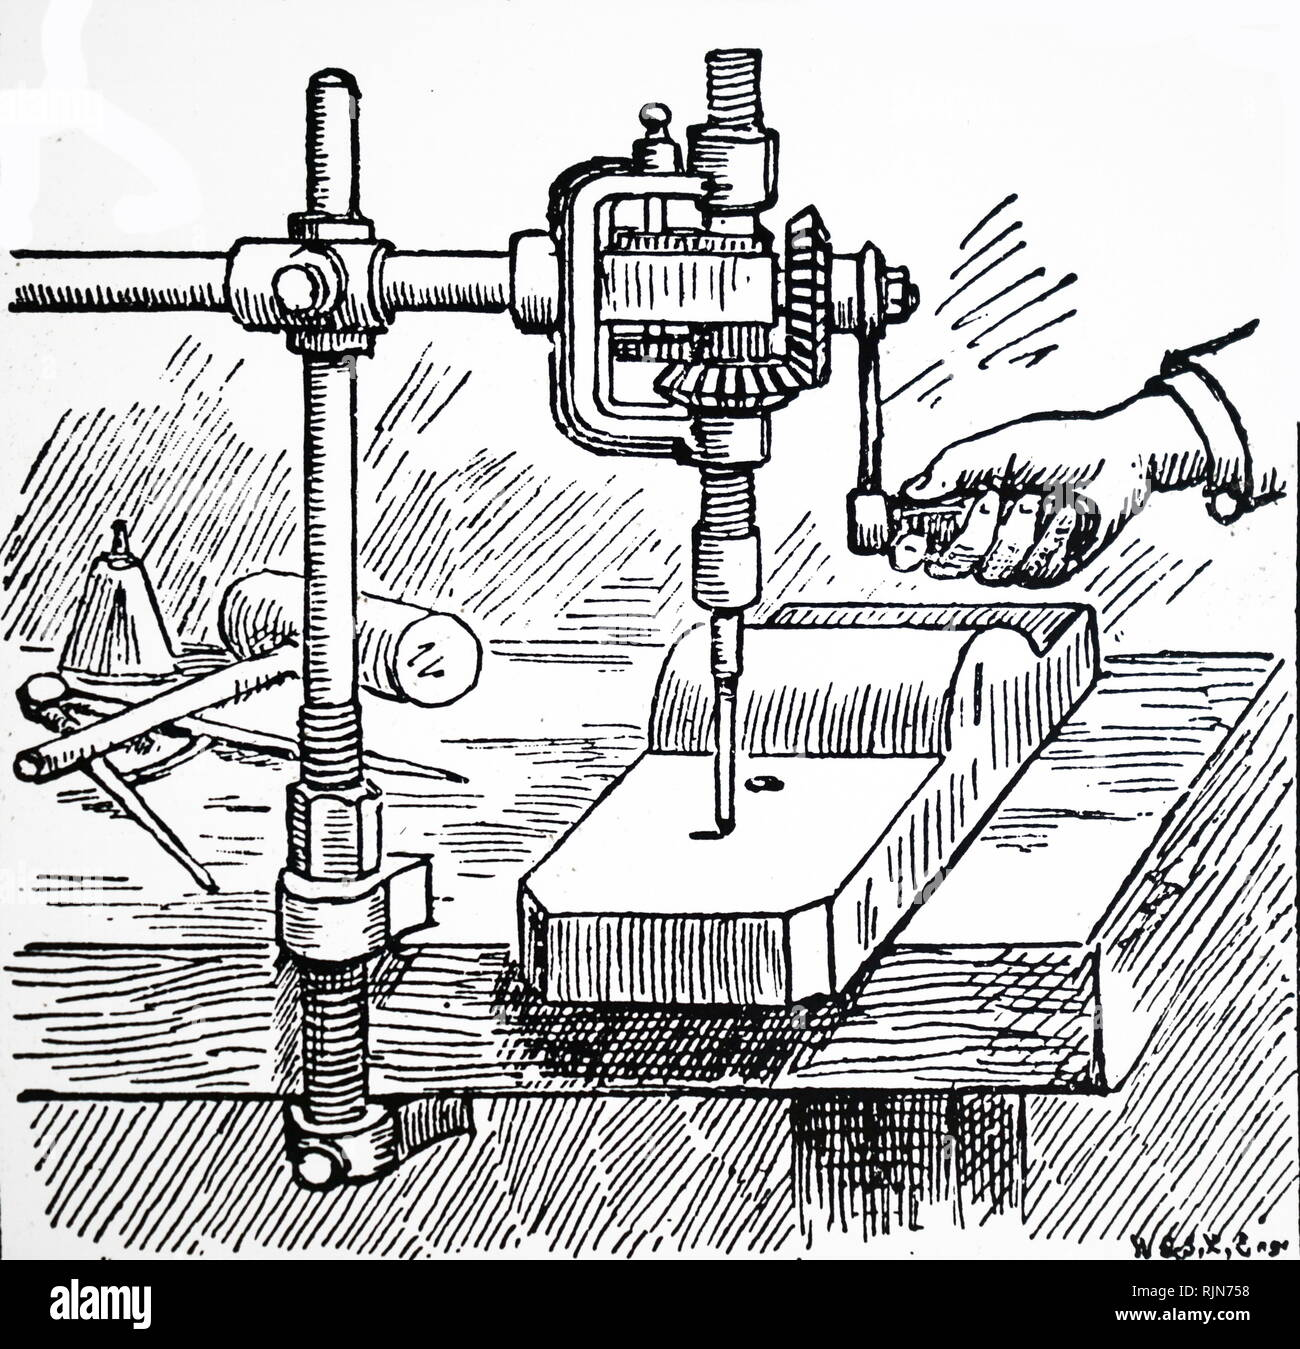 Illustration showing Small portable drill which could be